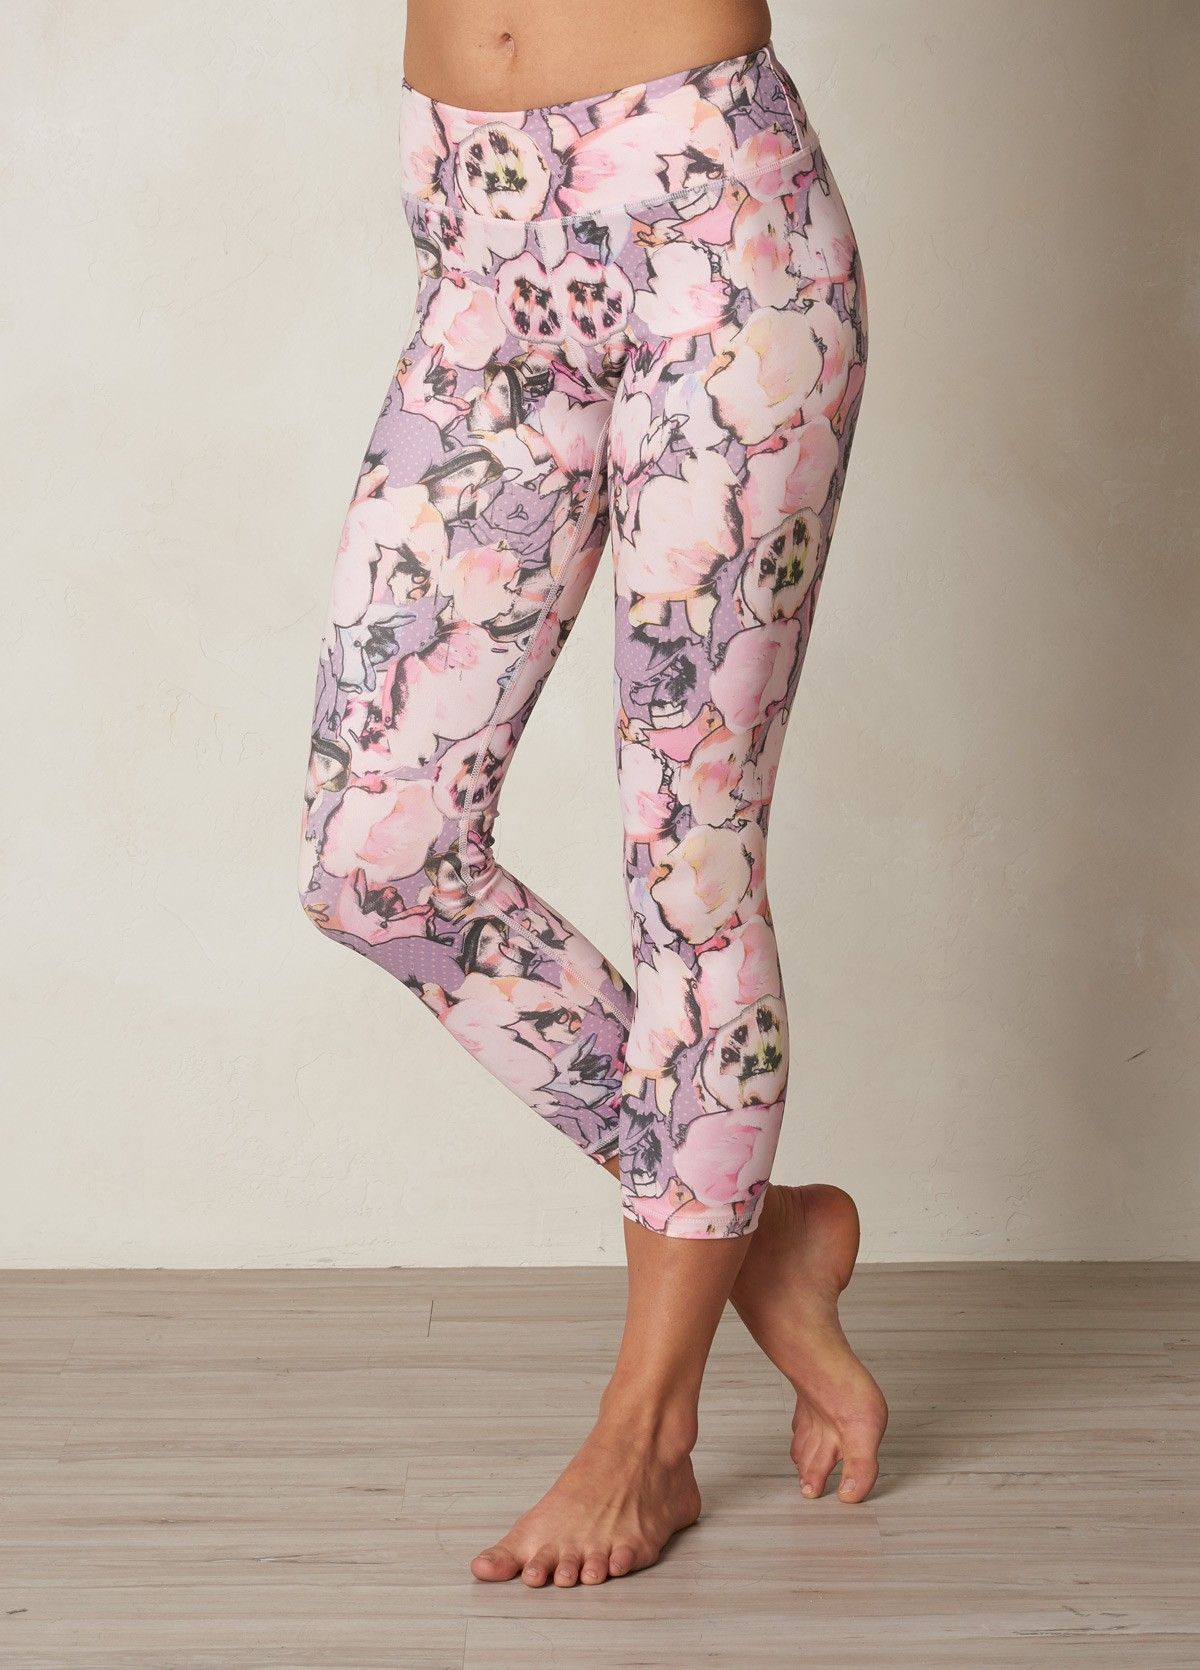 I Love The Prana Roxanne Printed Legging Check It Out And More At Www Prana Com Printed Leggings Yoga Pants Women Clothes Design